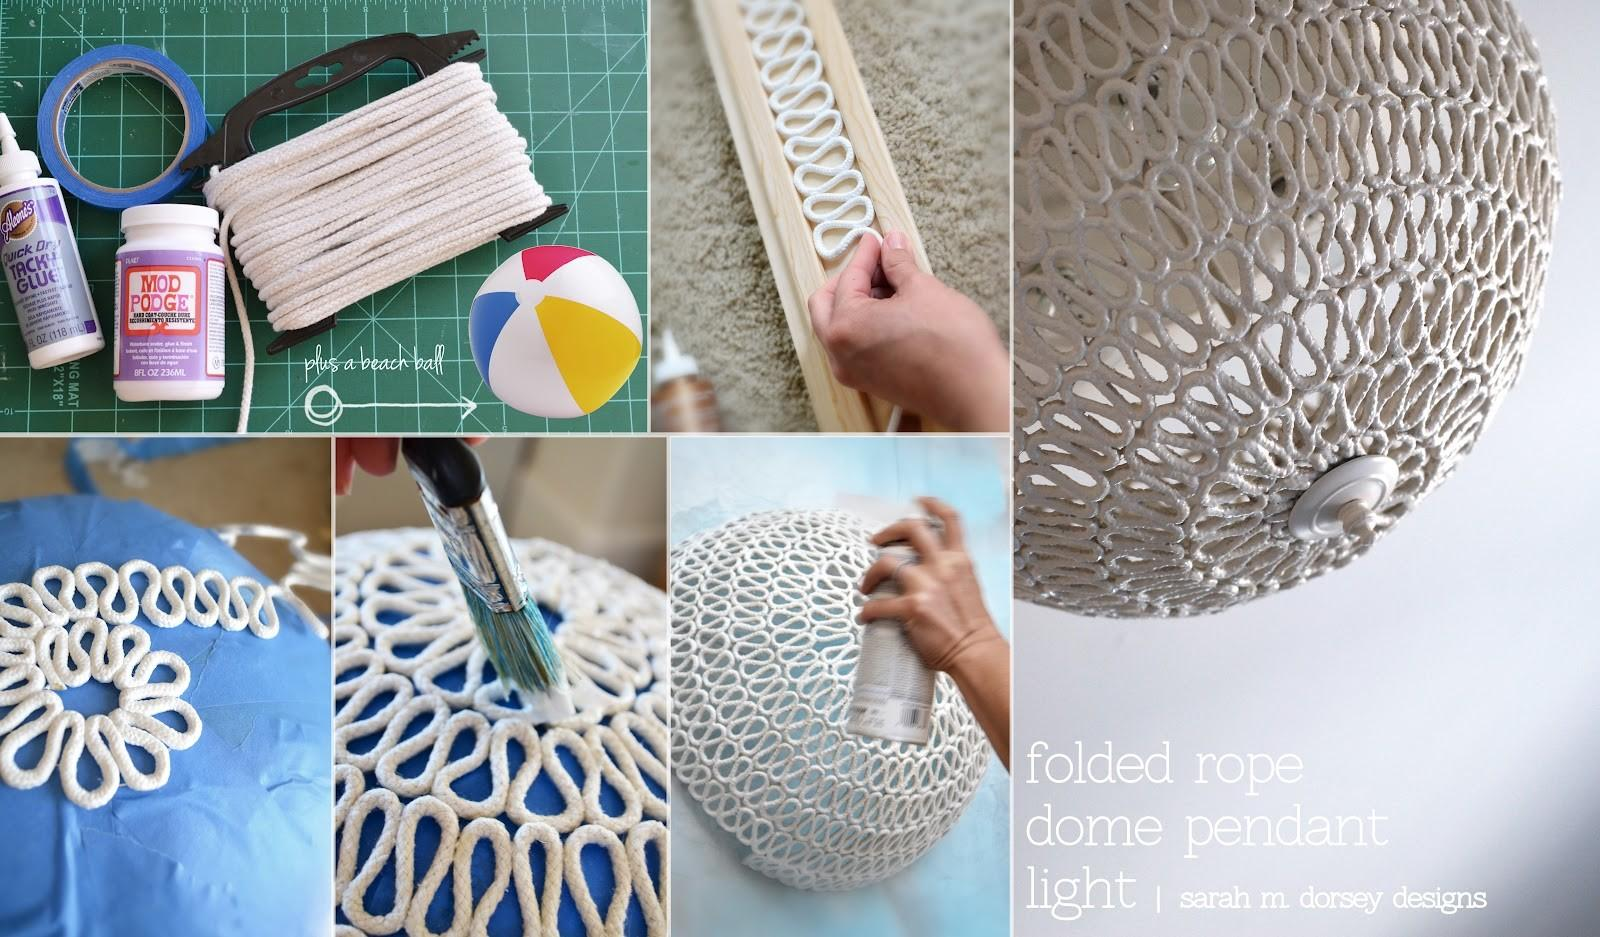 Sarah Dorsey Designs Diy Folded Rope Dome Pendant